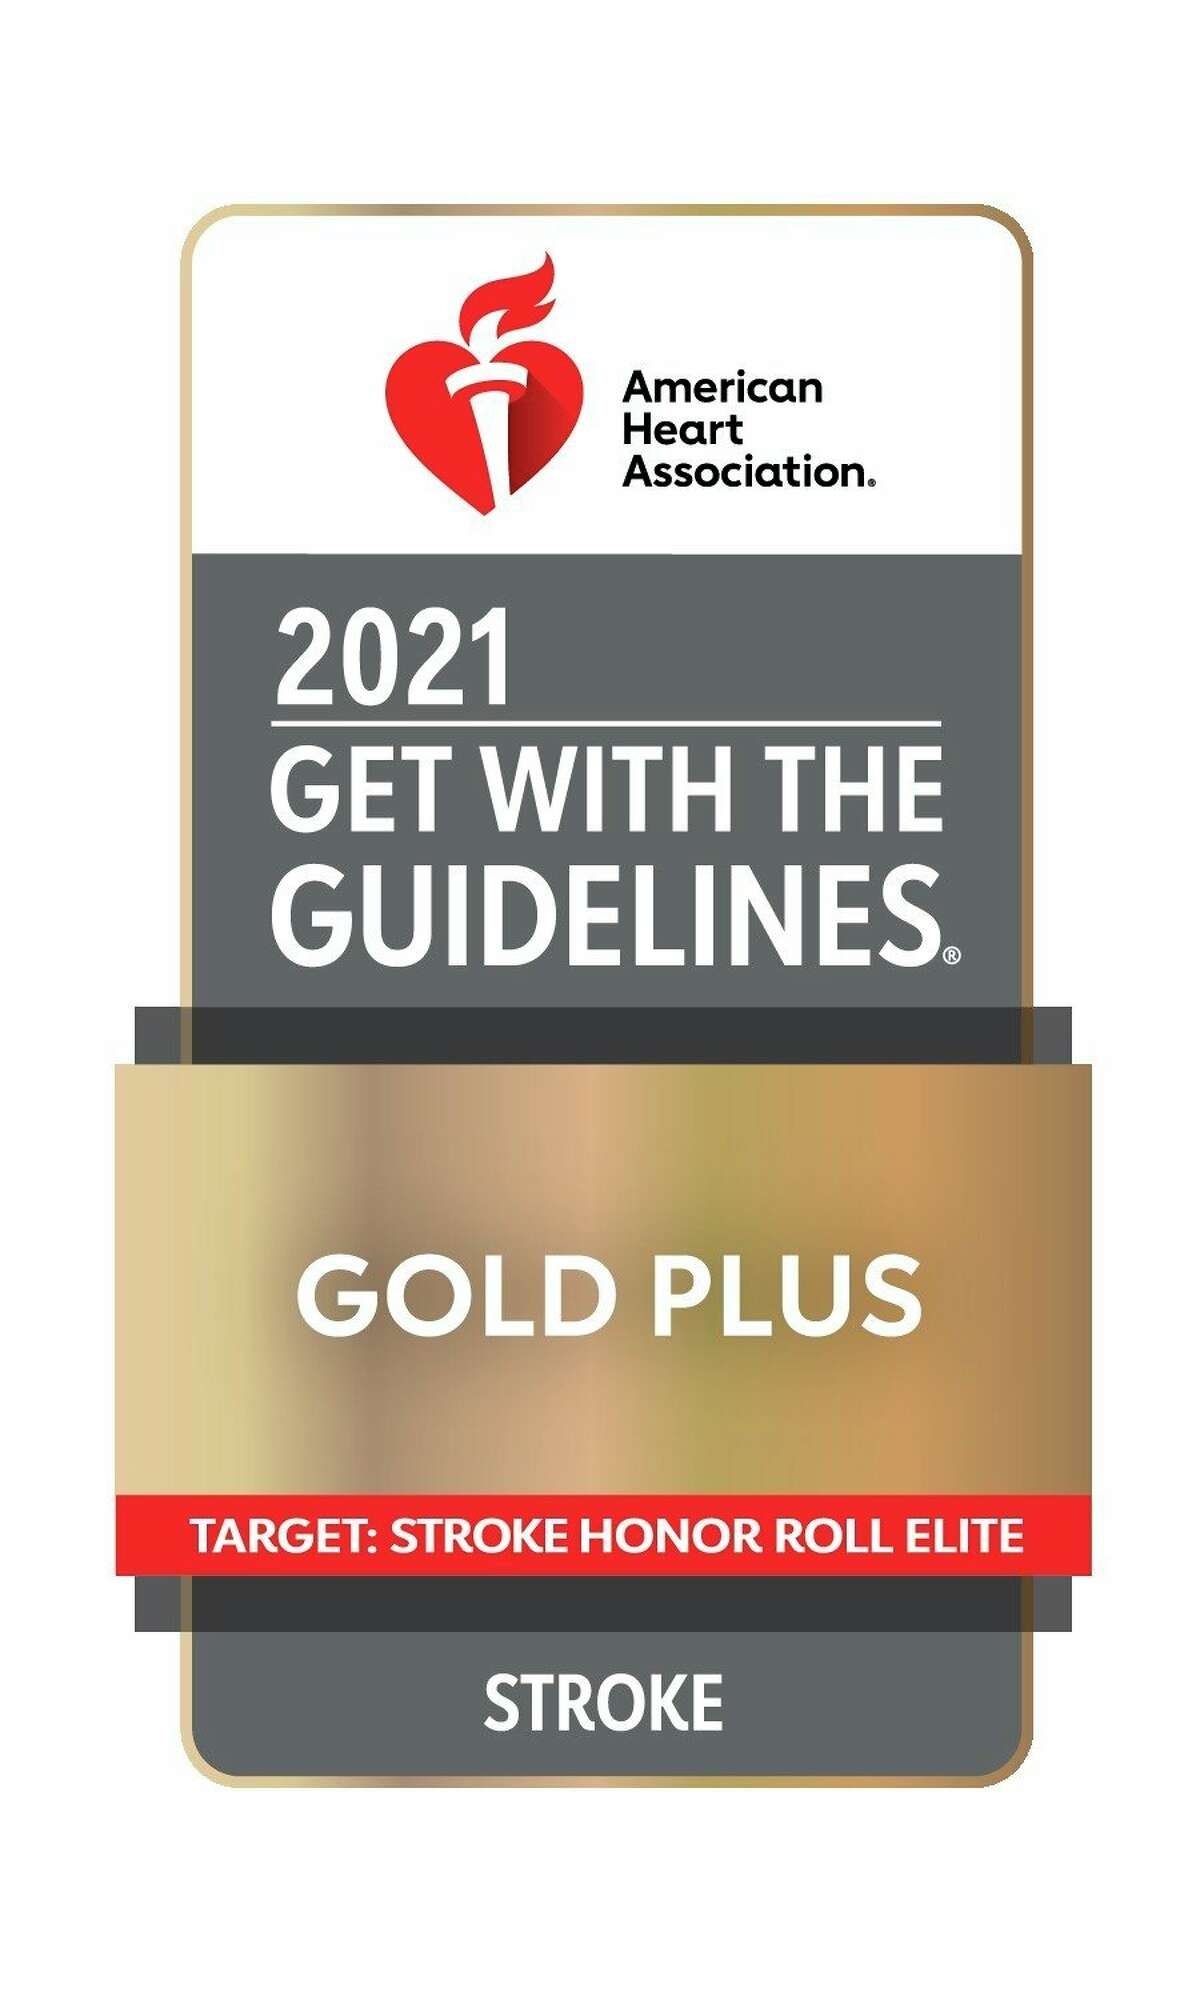 Munson Medical Center has been honored with the 2021 Get With The Guidelines Stroke Gold Plus Award along with the Target Stroke Honor Roll Elite Award. (Courtesy Photo)